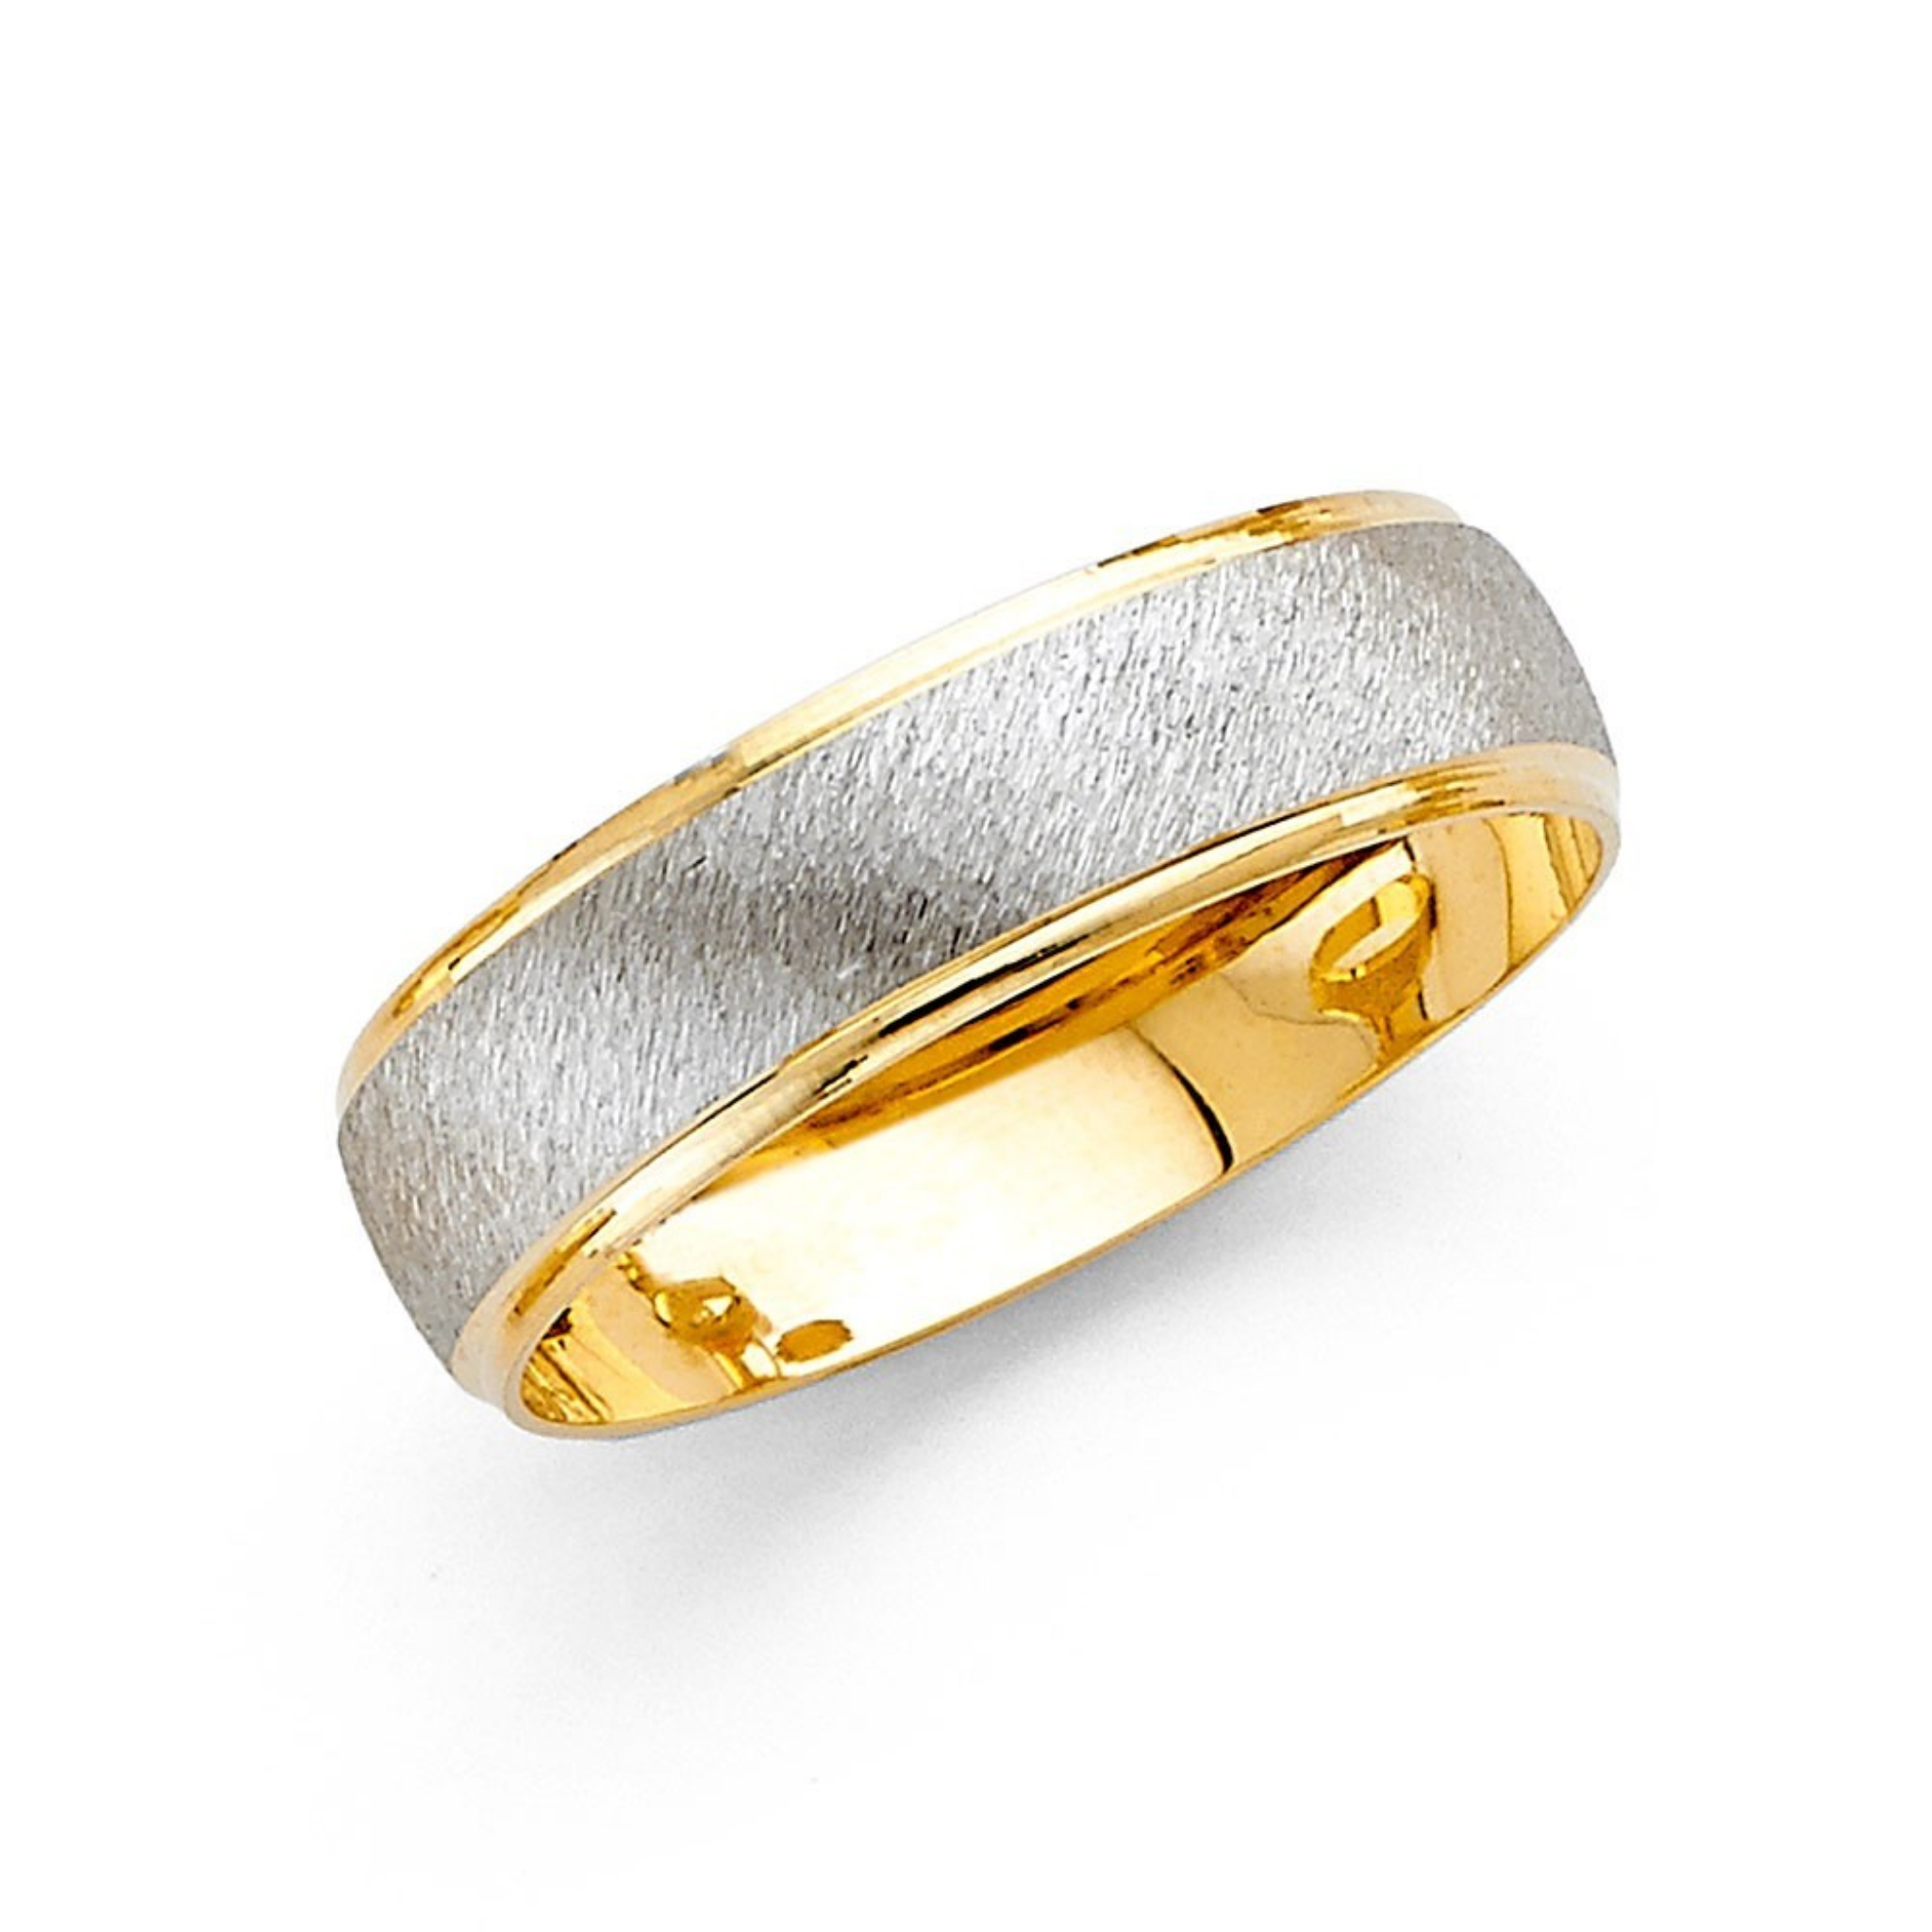 Sand Blasted Men's Wedding Band 6MM - 14K Two Tone Gold